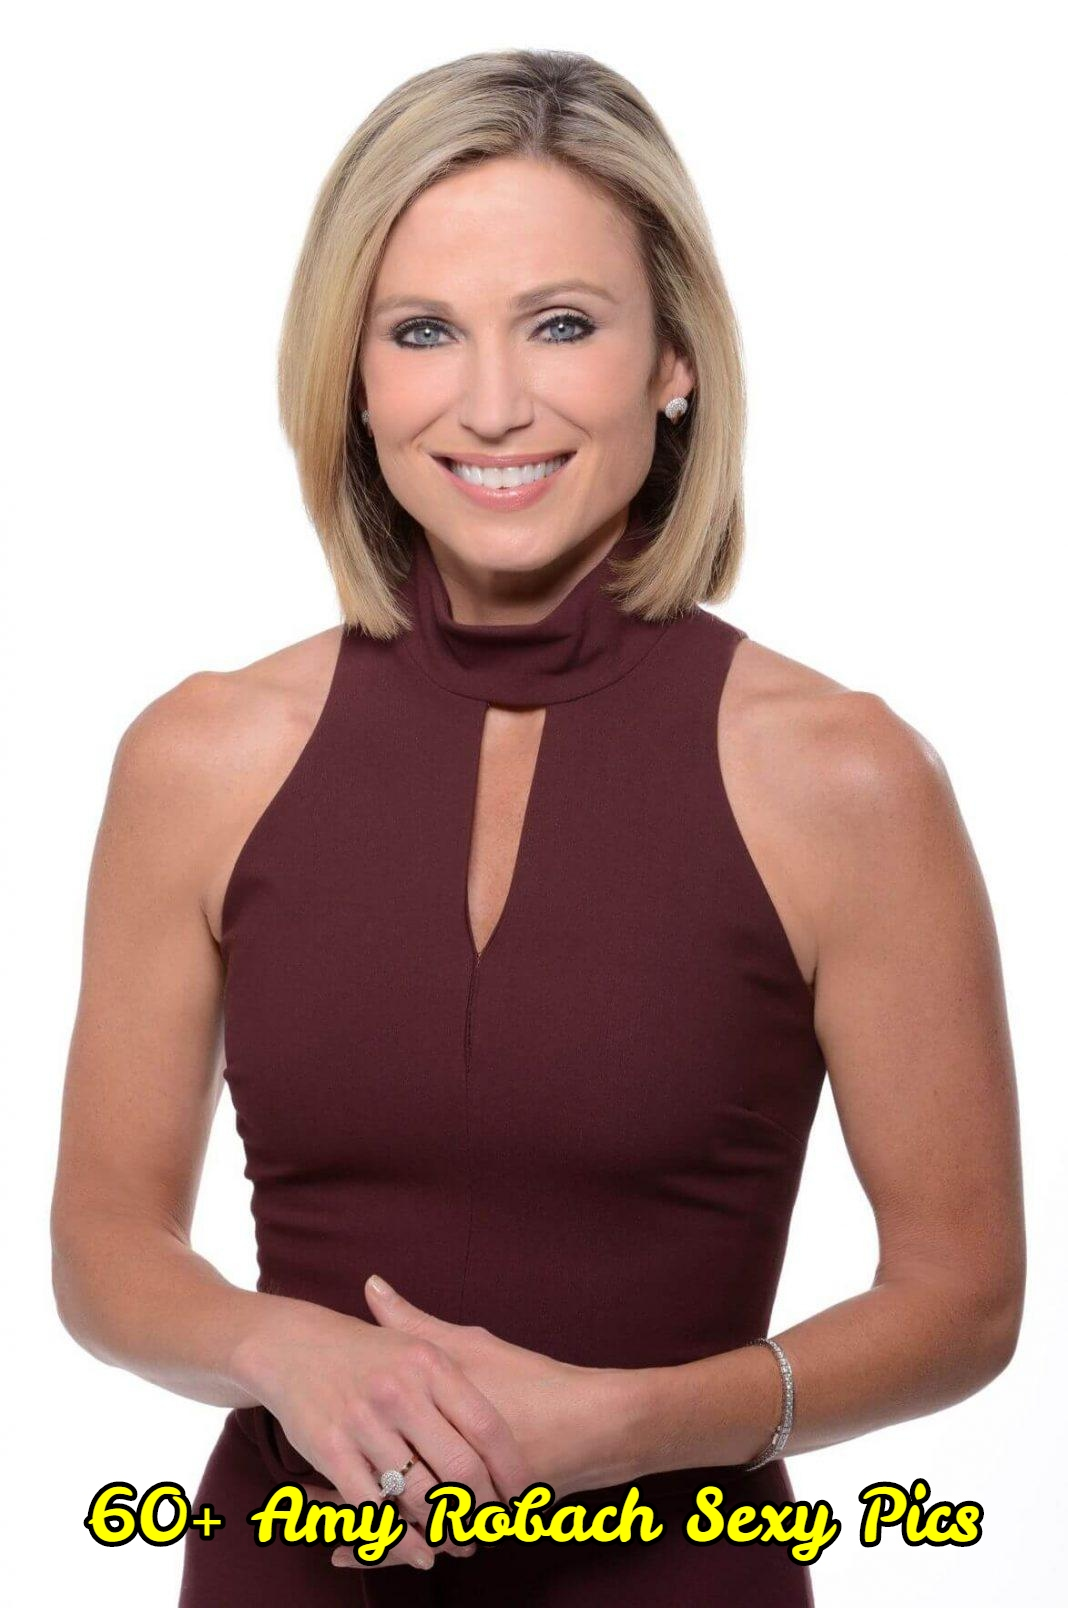 Amy Robach facts